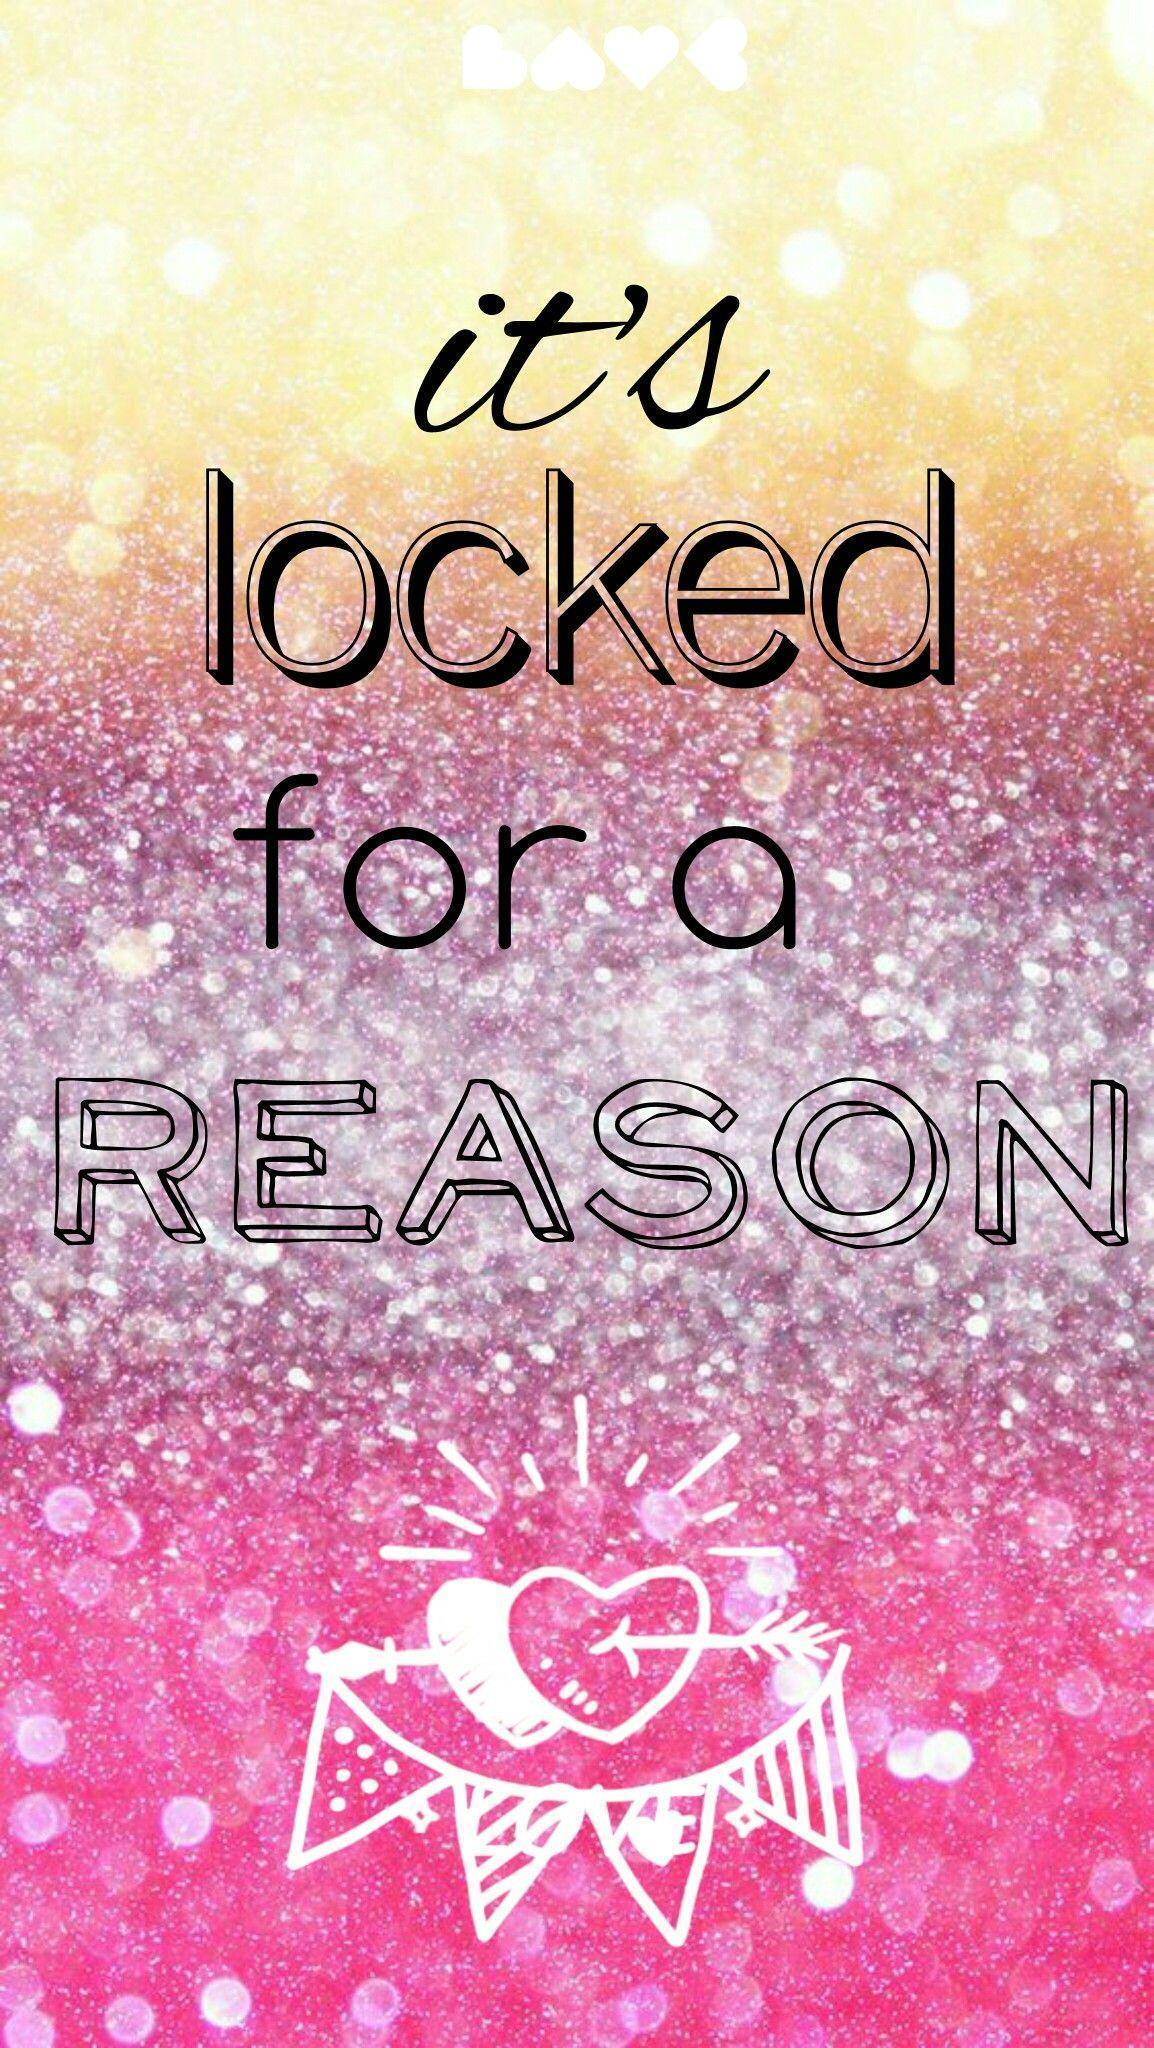 Girl Boss Quotes Wallpaper For Phone It S Locked For A Reason Wallpapers Wallpaper Cave